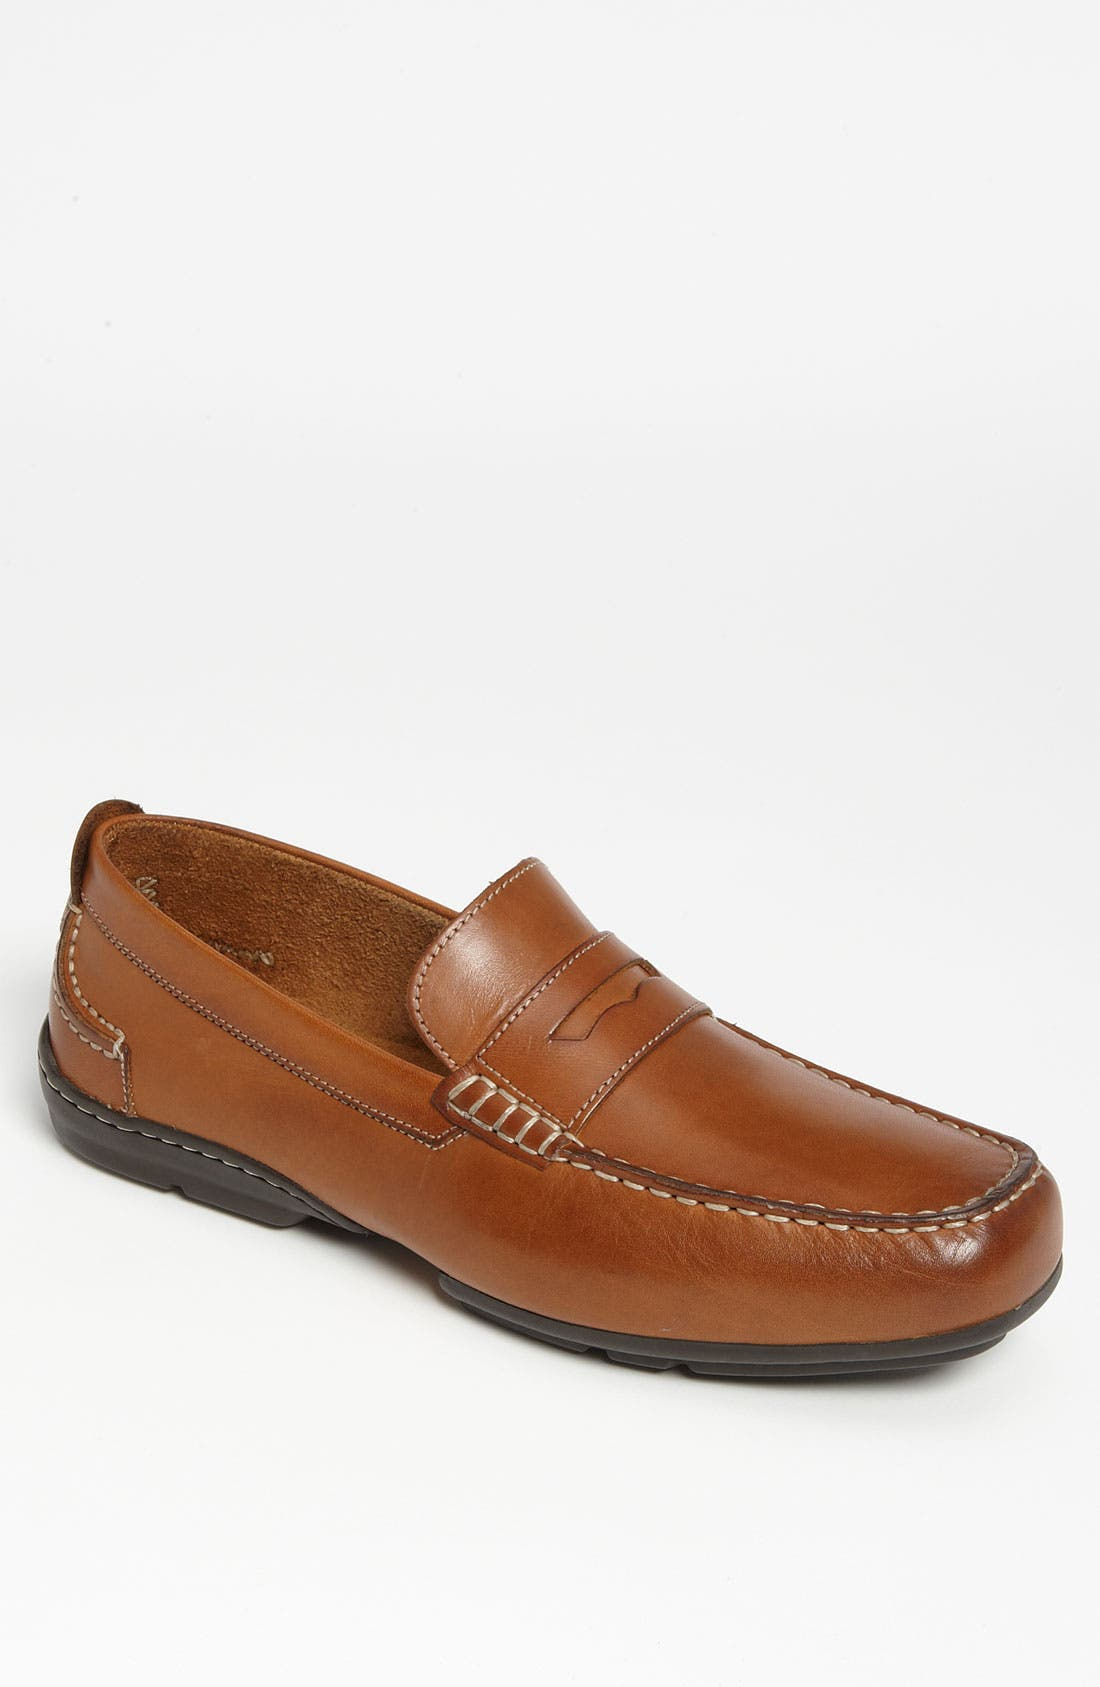 Alternate Image 1 Selected - Florsheim 'University' Penny Loafer (Online Only)